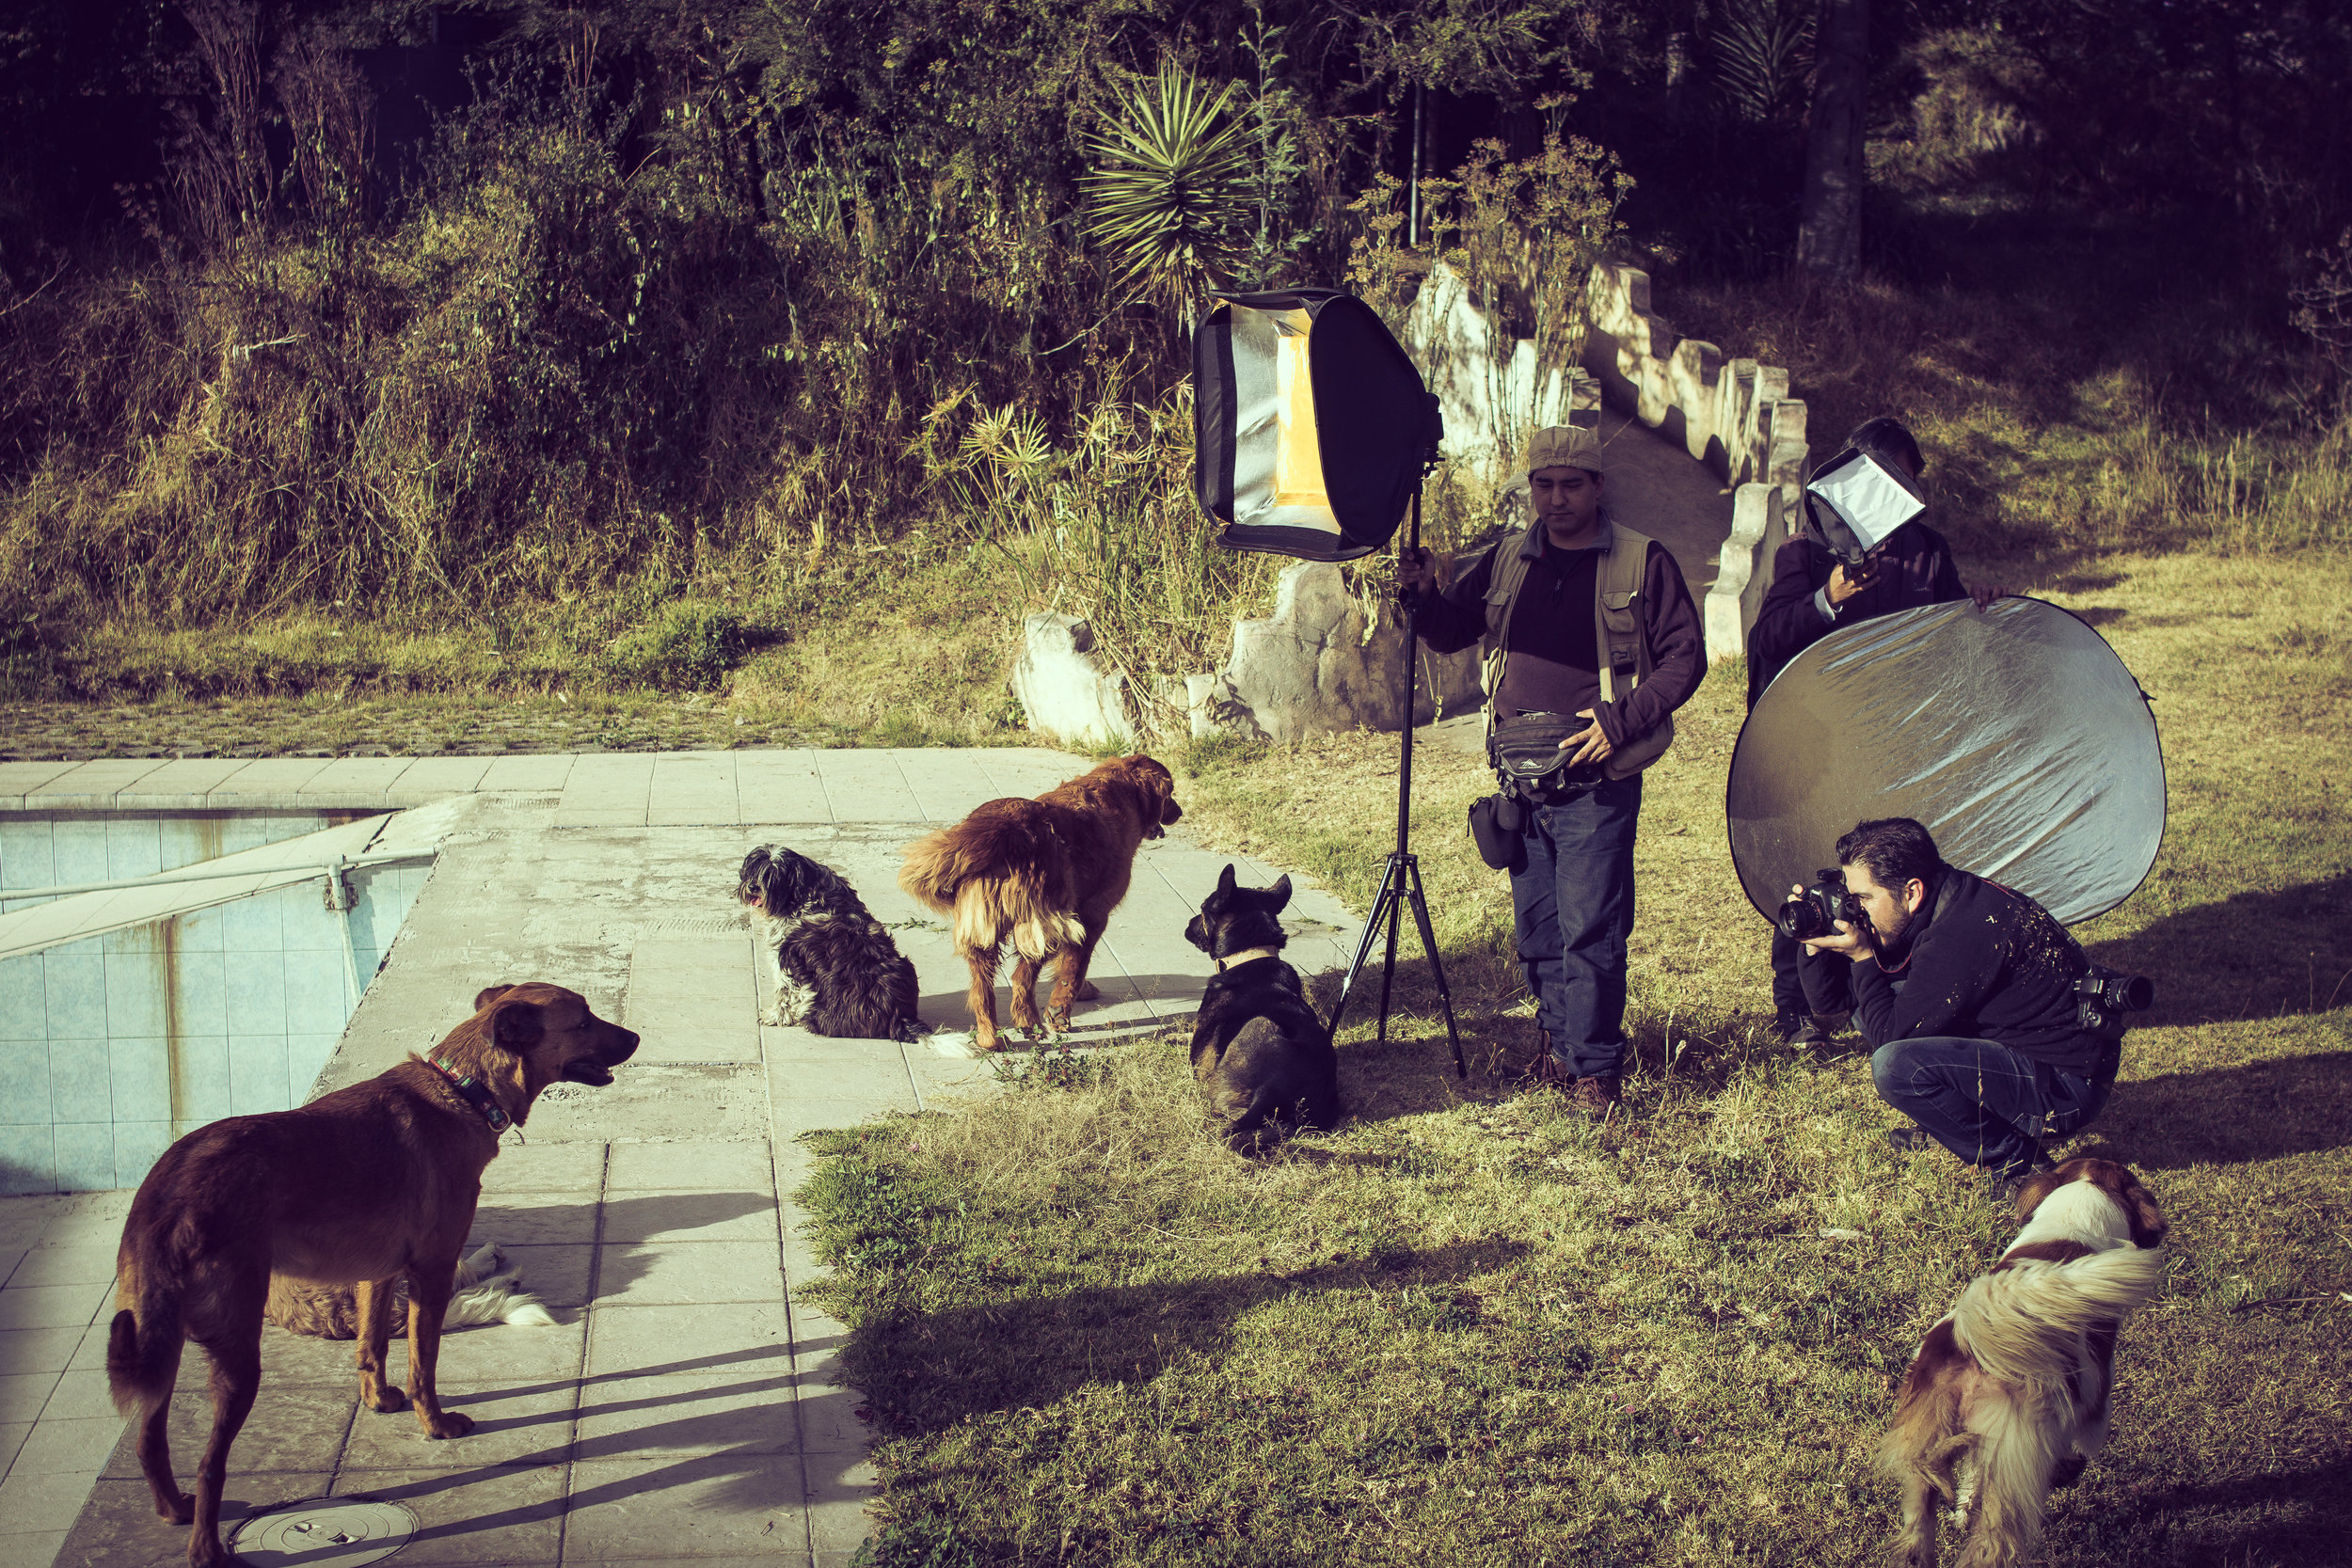 August 2018 - Luis Mariño Carrera and his photography team at the shelter AULLA preparing material for a fundraising campaign to support this local Ecuadorian shelter.